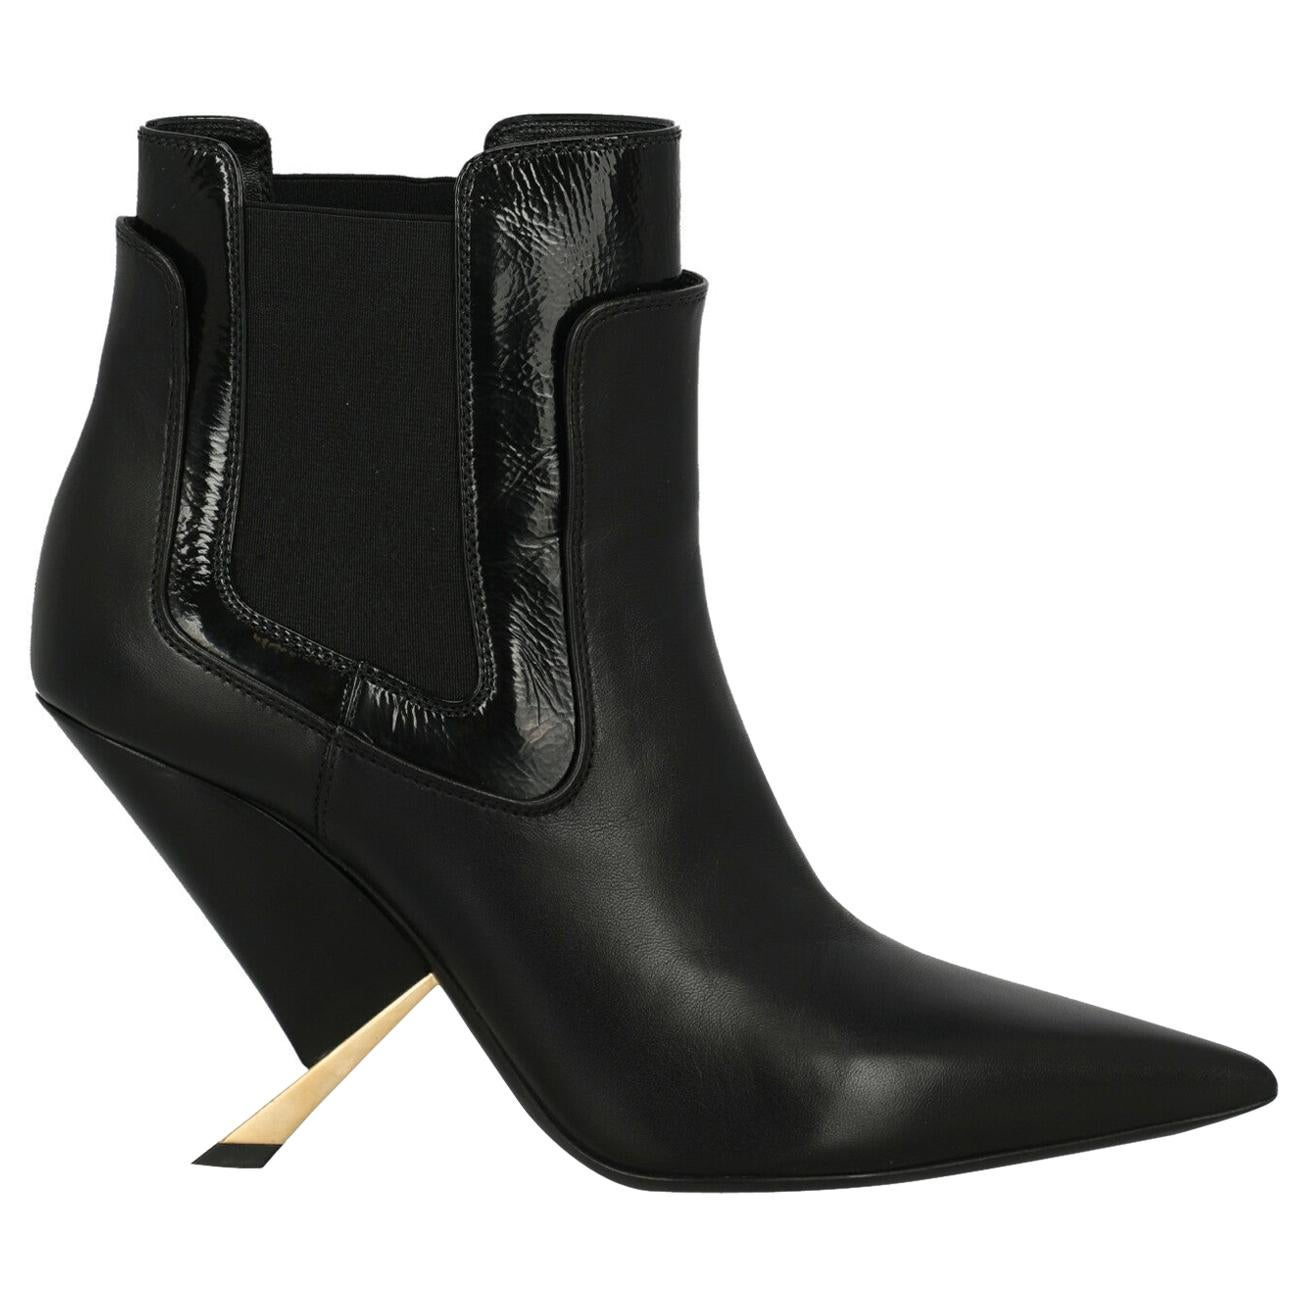 Casadei Woman Ankle boots Black Leather IT 40